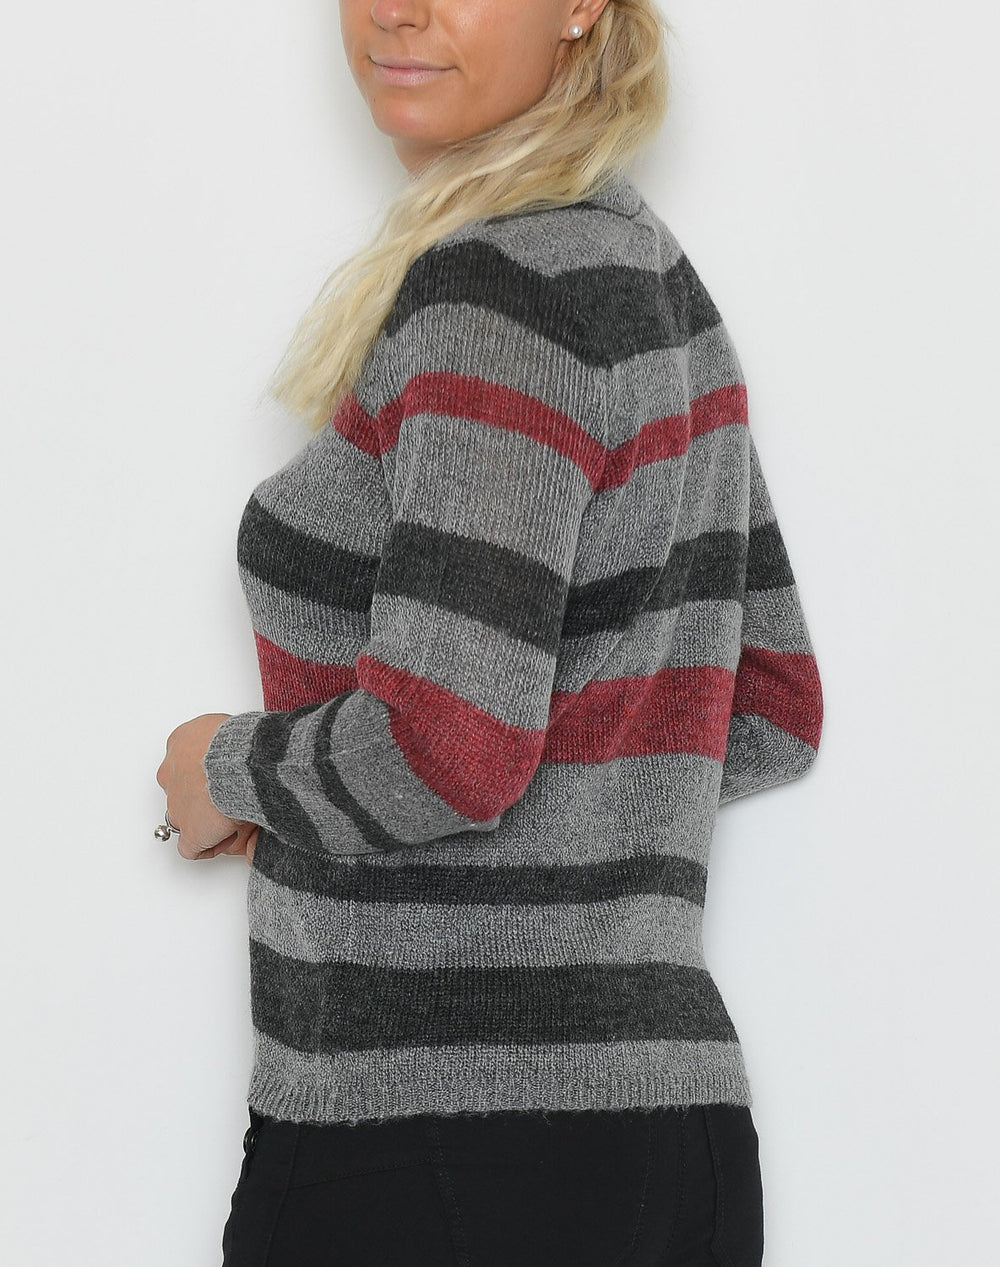 Ofelia Syset knit bluse red combi - Online-Mode